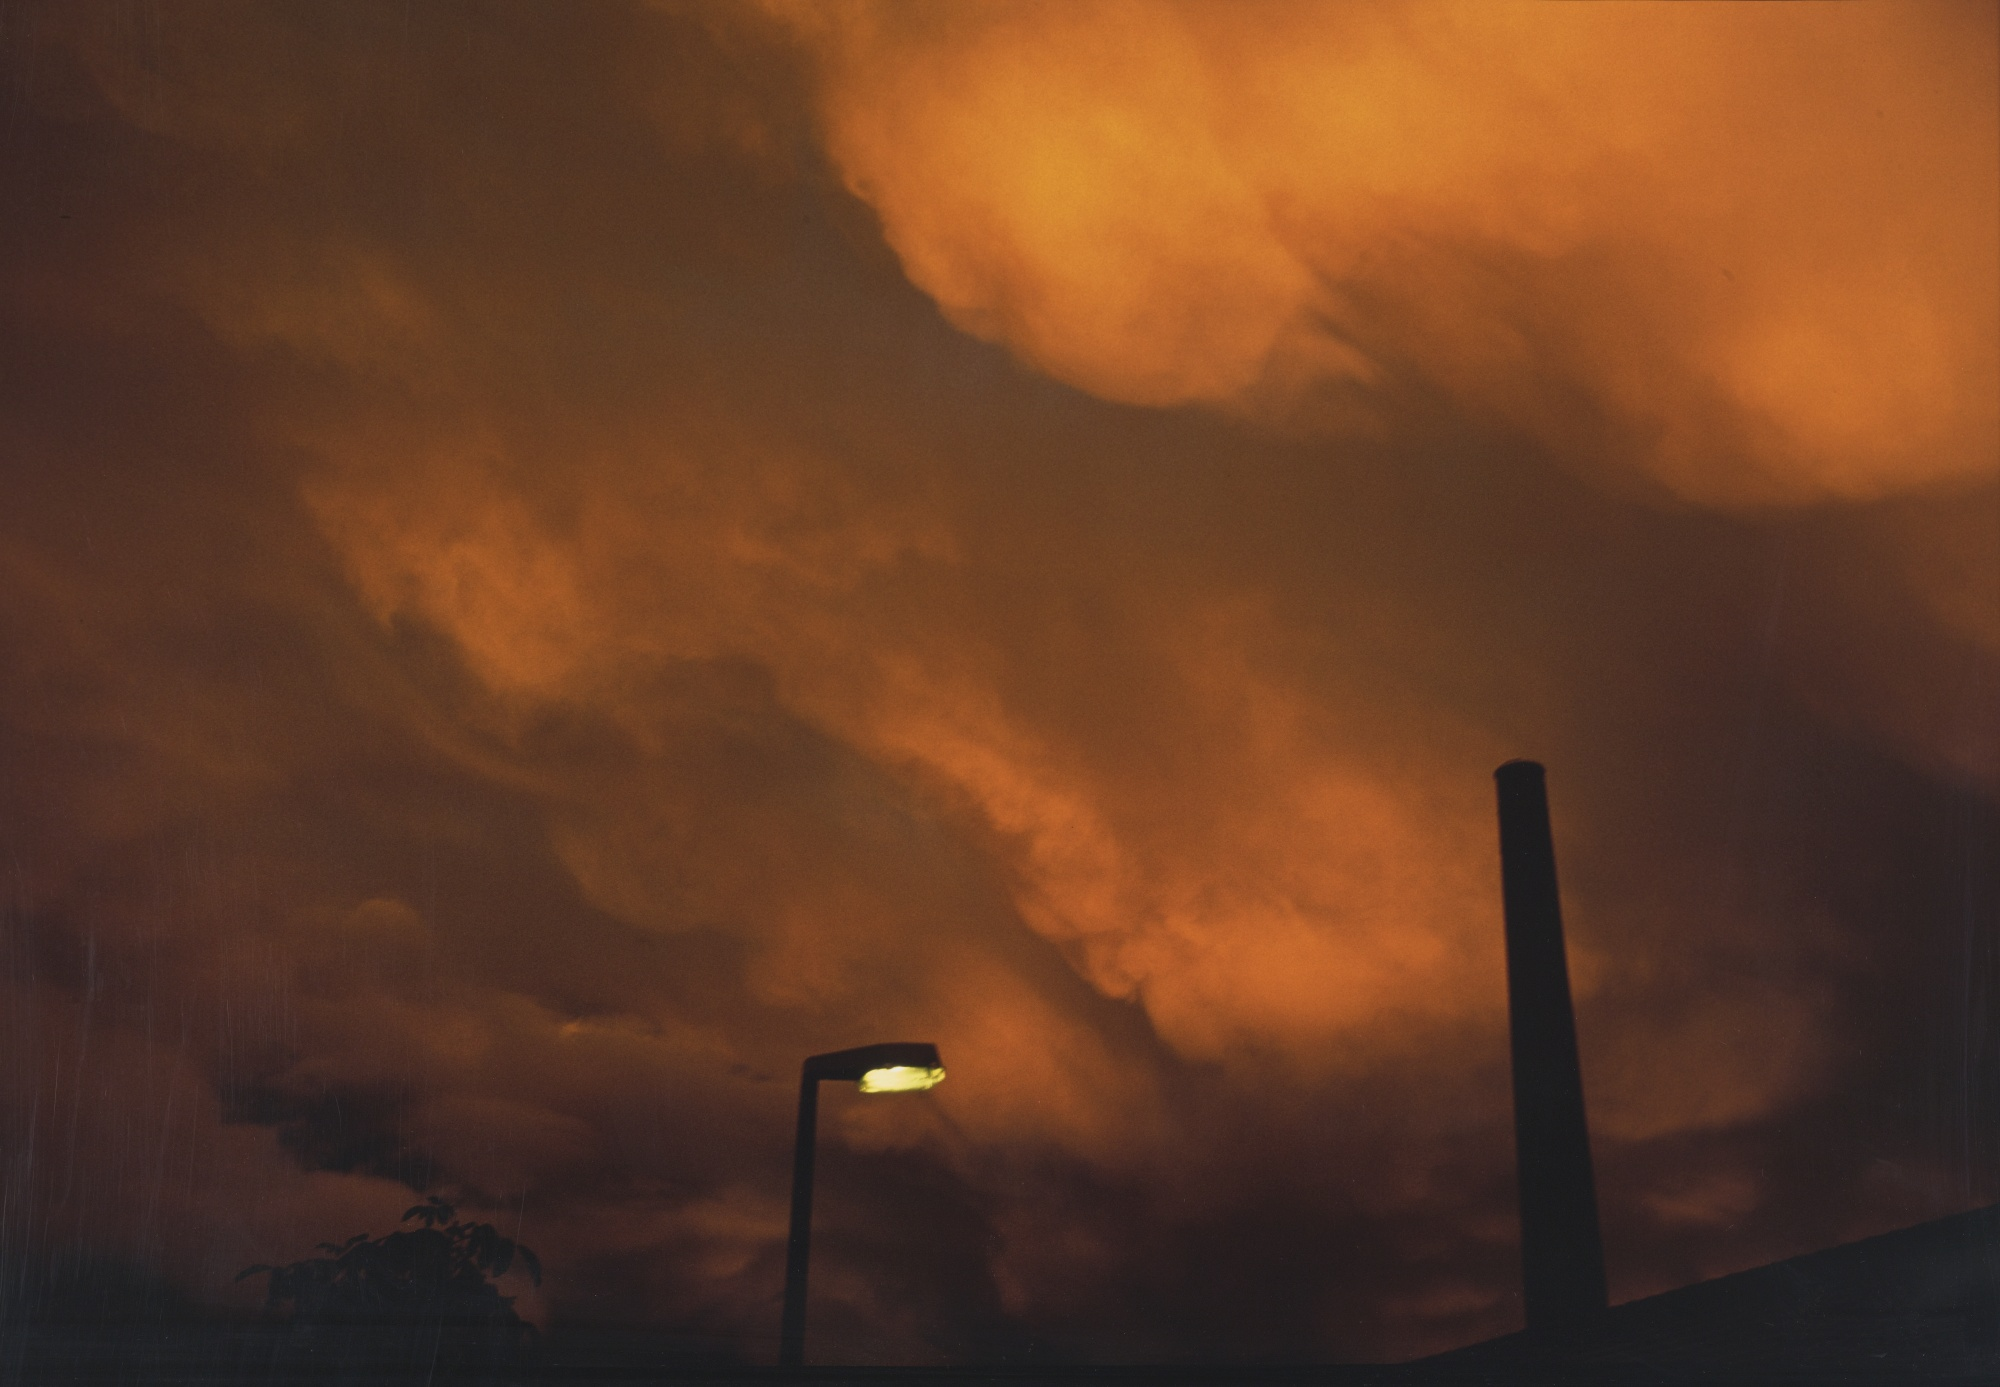 Nan Goldin, <em>The sky on the twilight of Philippine's suicide, Winterthur, Switzerland, </em> 1997.